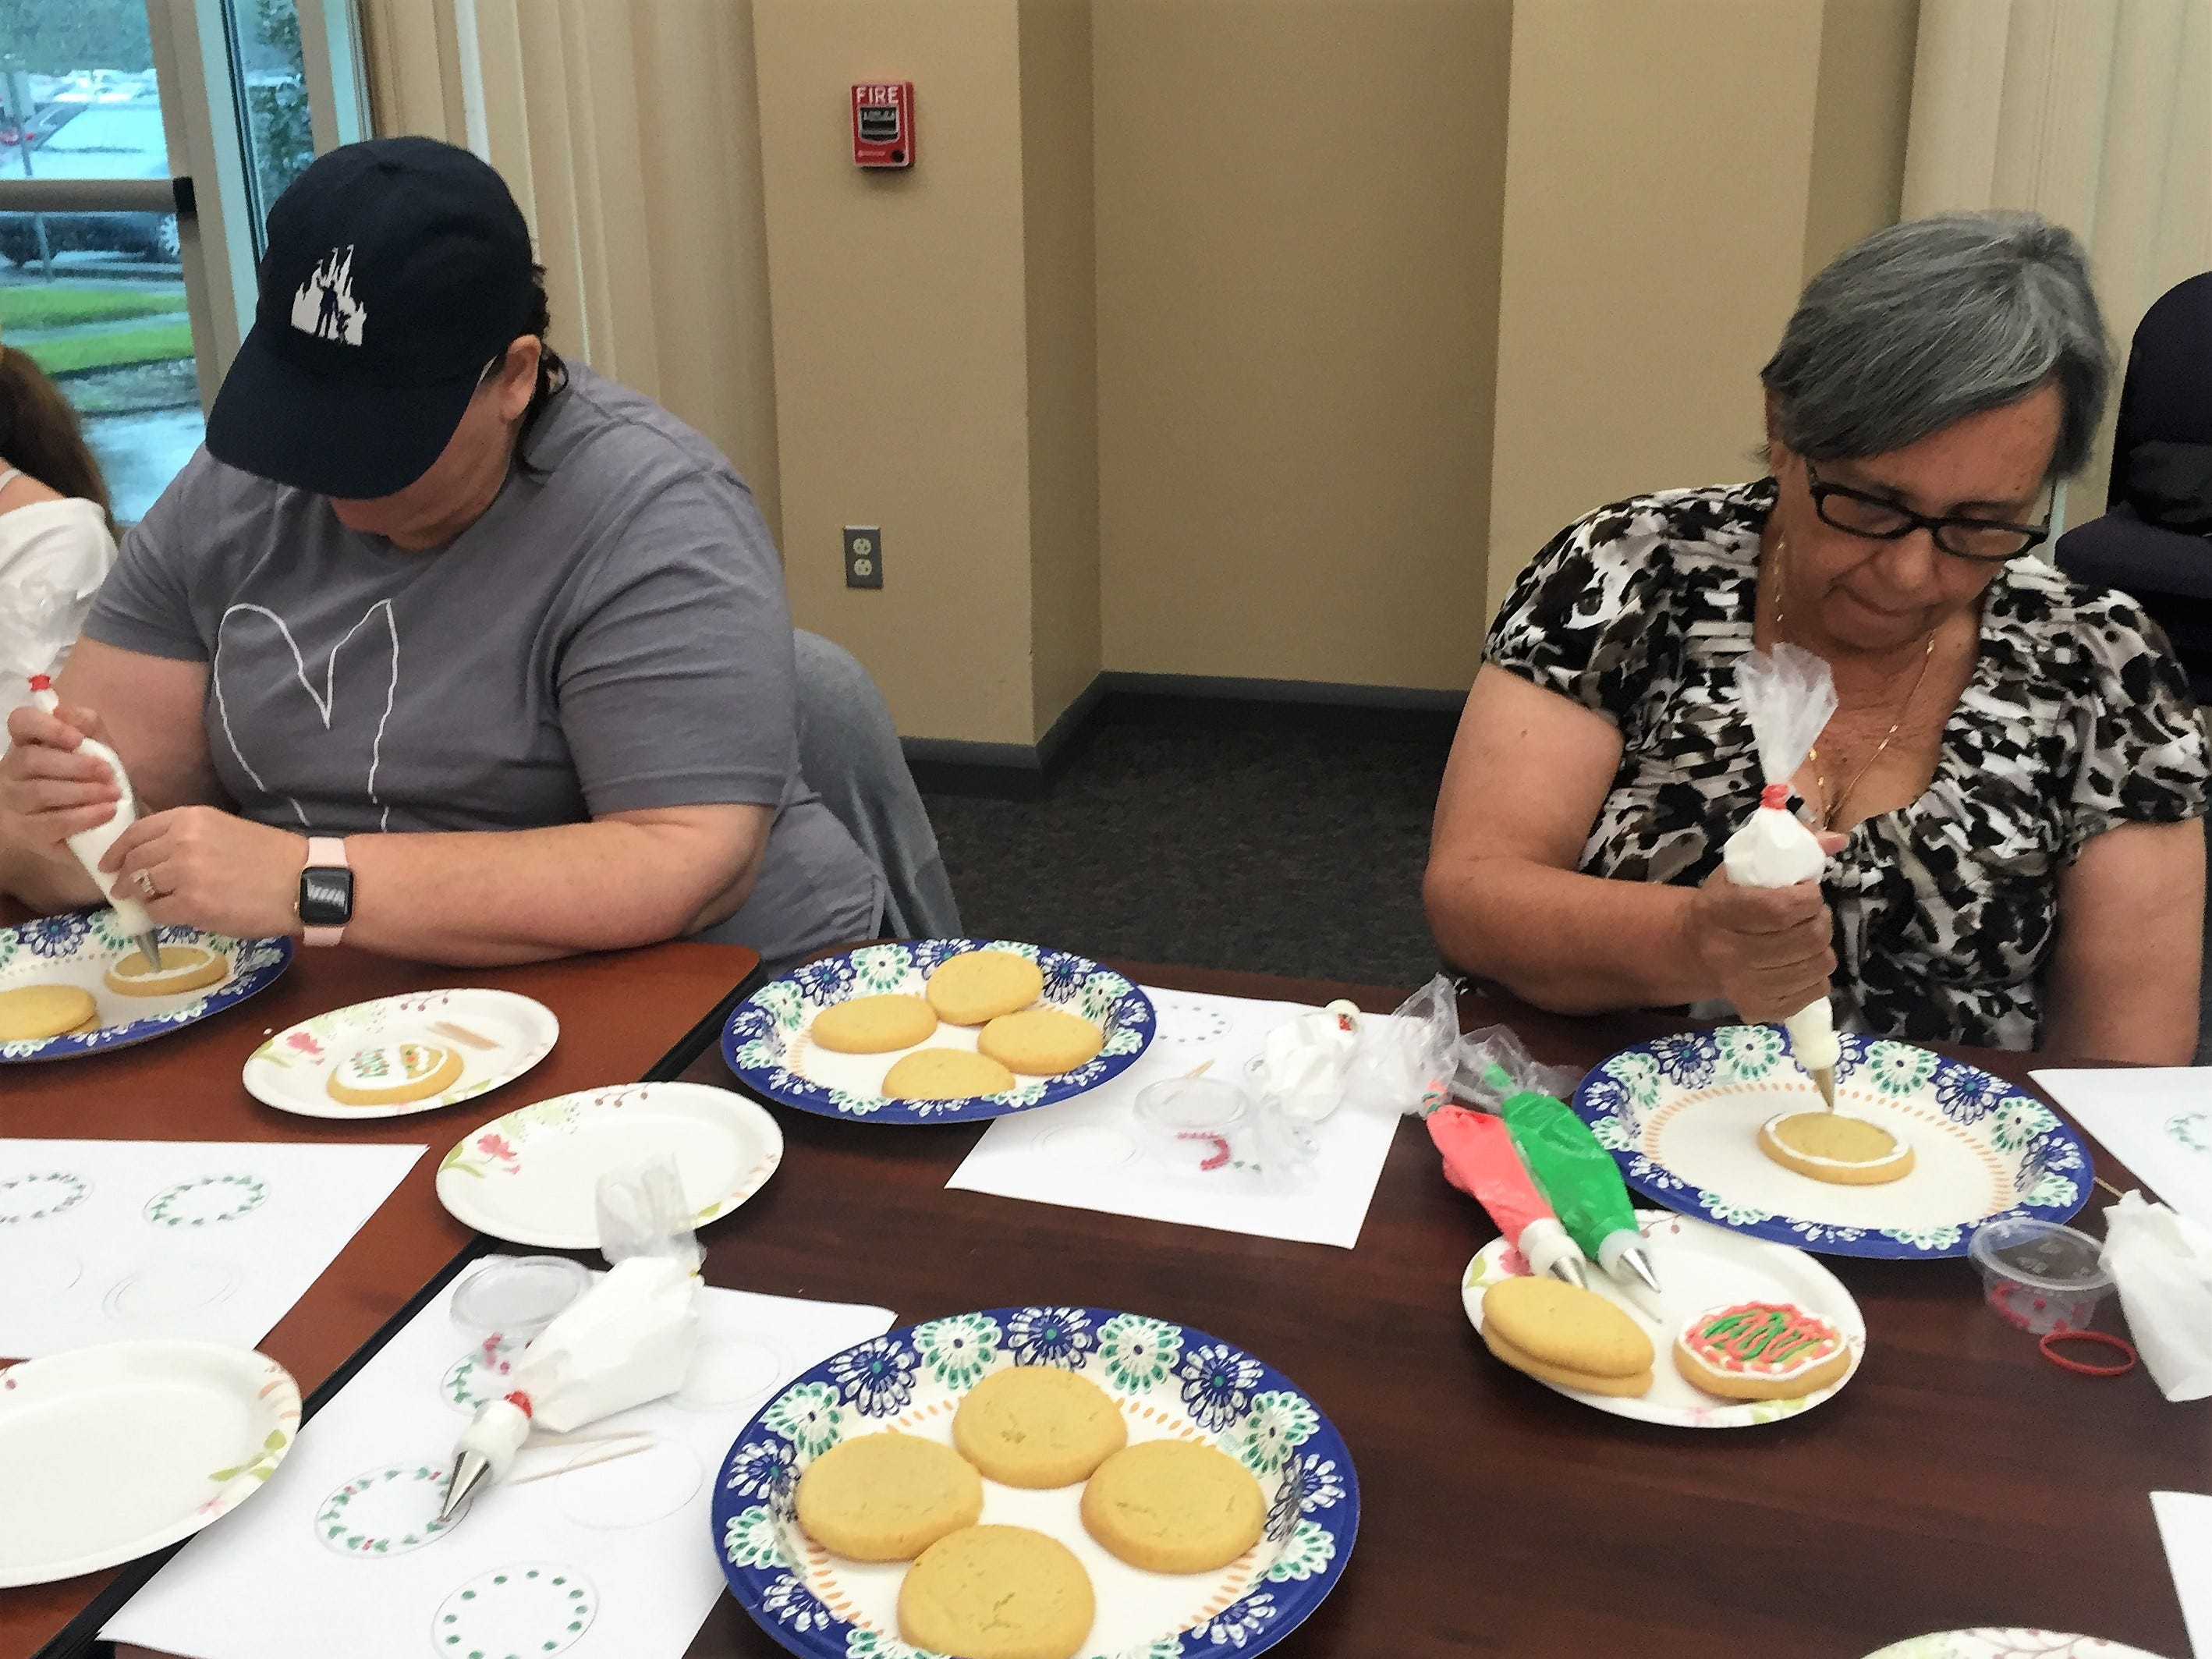 Daily Advertiser Christmas cookie decorating for kids